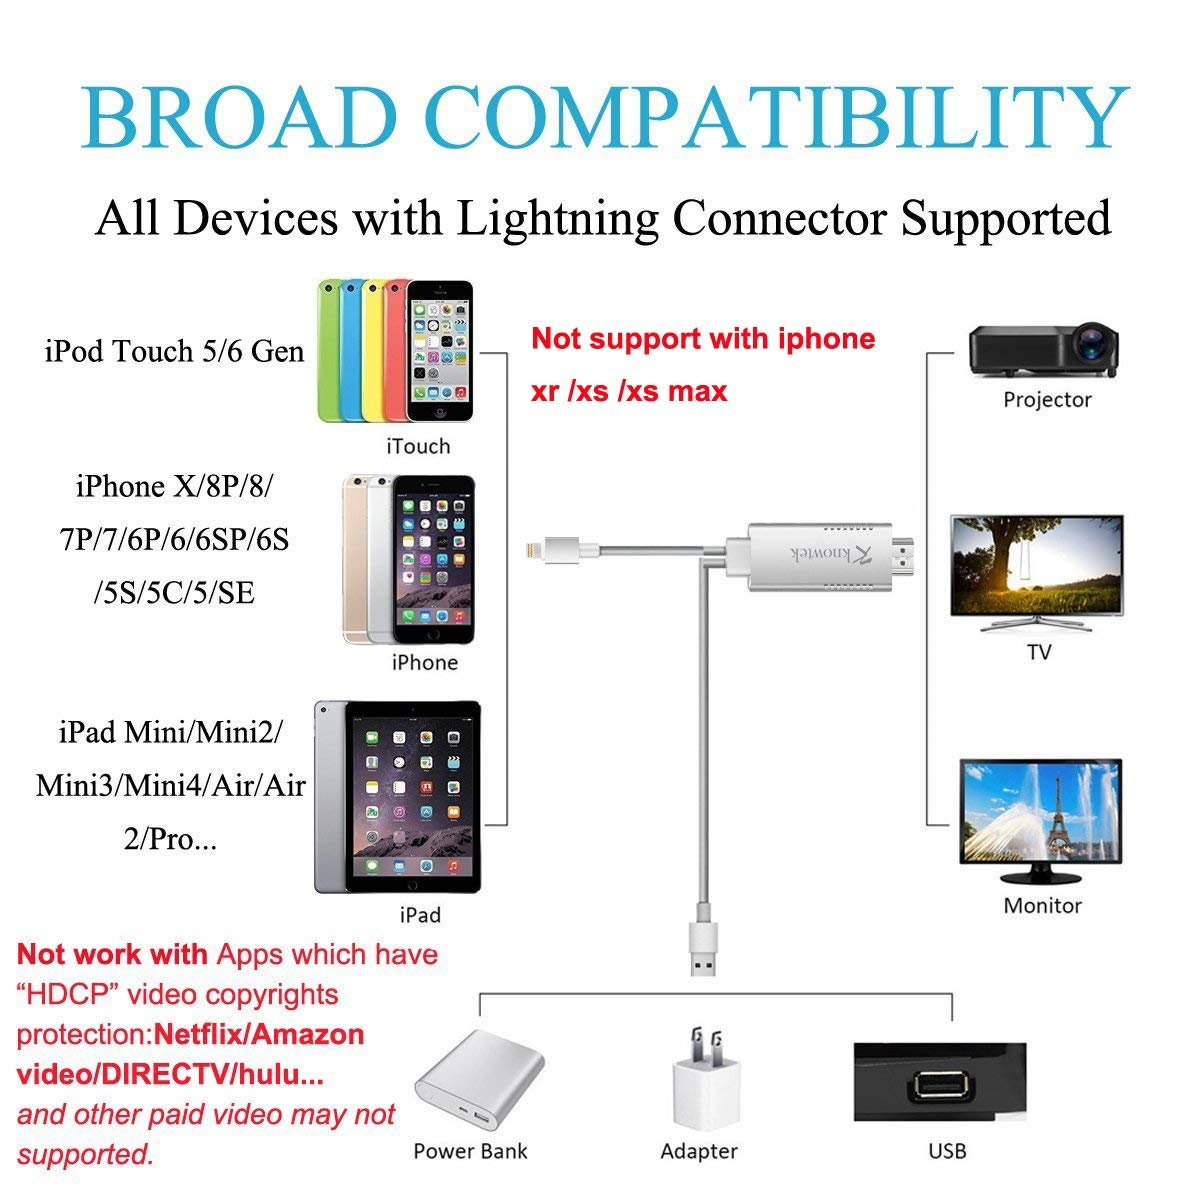 Hdmi Adapter for iPhone Ipad mirroring to TV HDTV Projector Monitor Digital  Cable Convertor for iphoneX/8/7/6/5 Ipad iPod 6 56ft 1080P Plug and